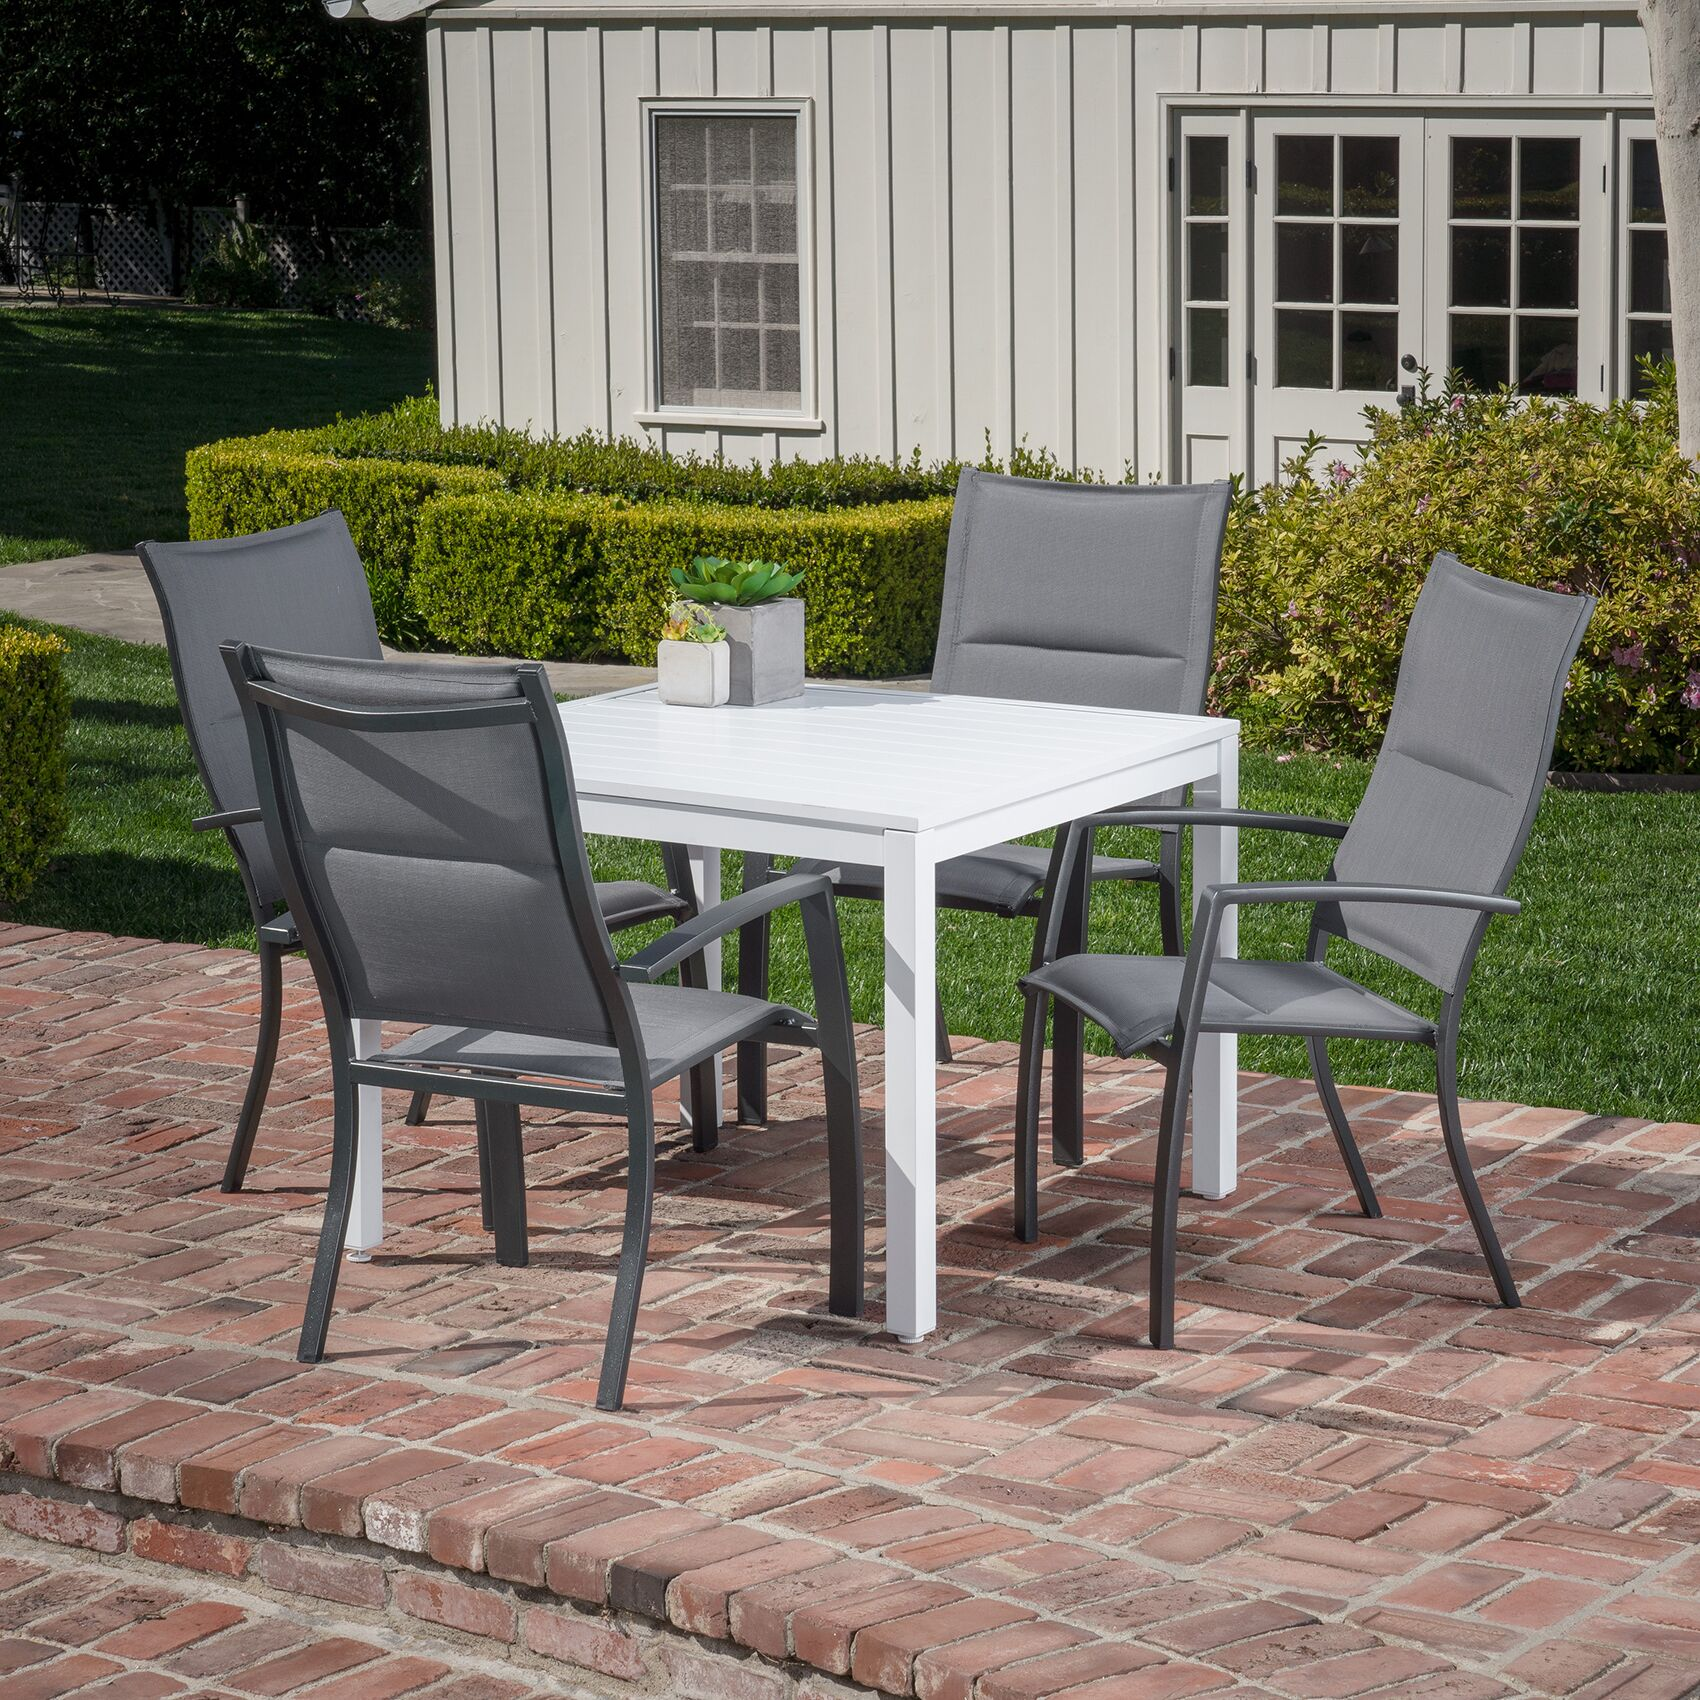 Frampton Cotterell 5 Piece Dining Set